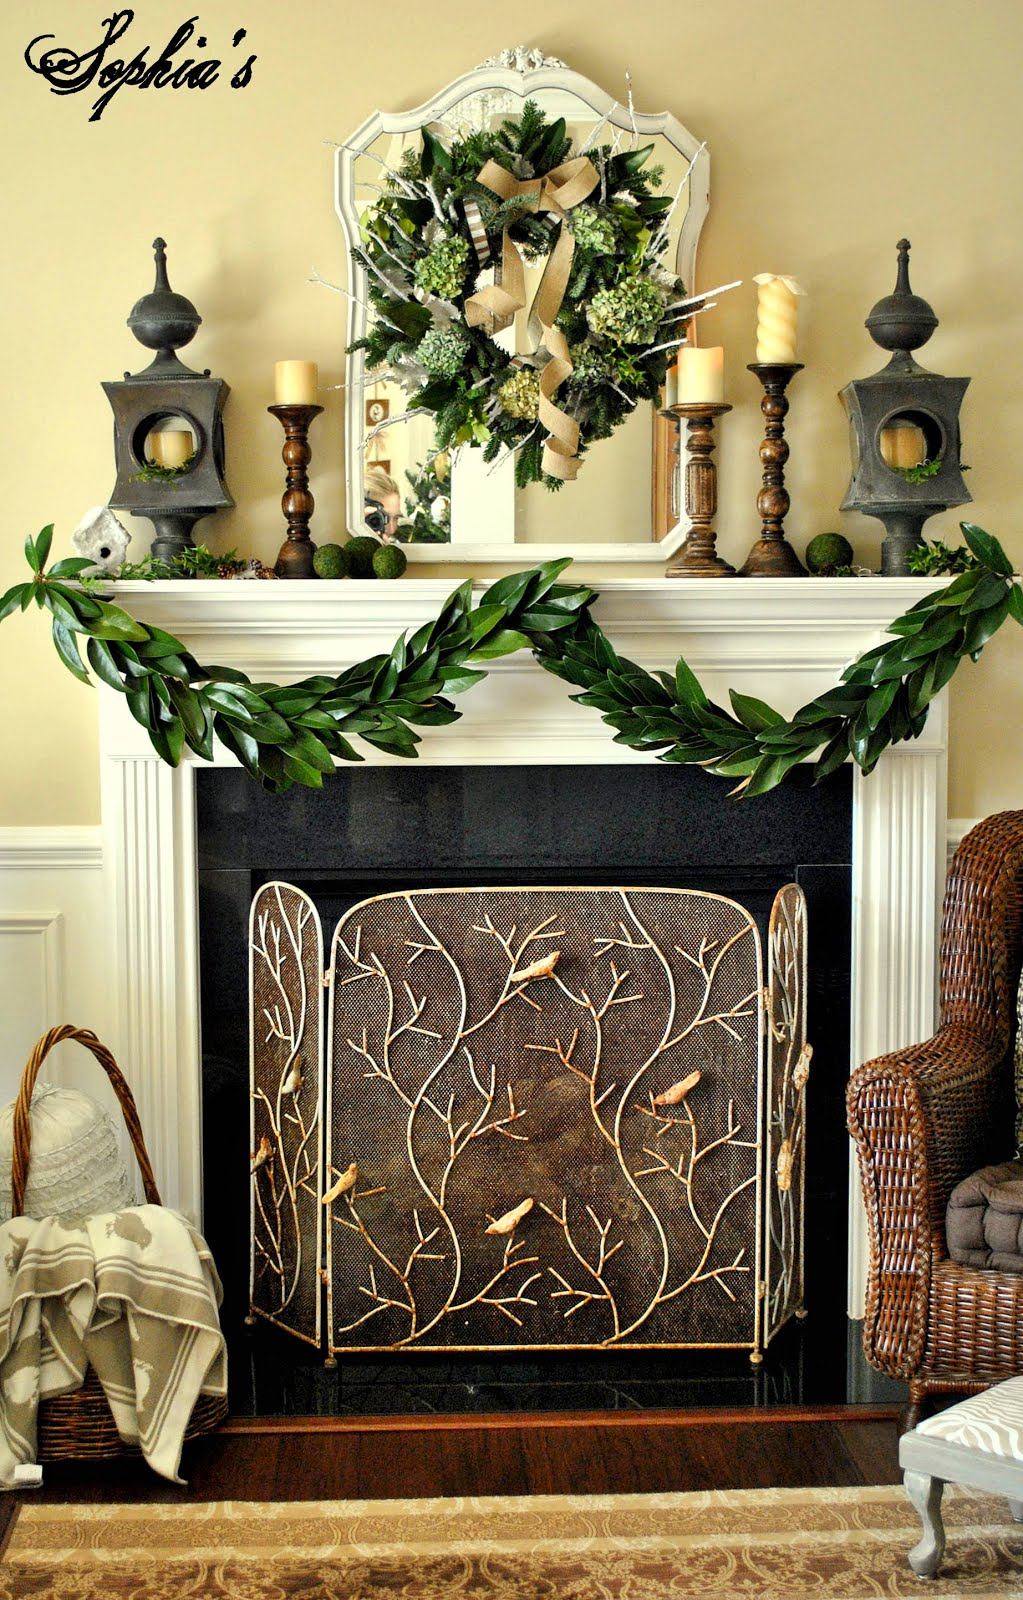 Decorating A Mantel For Christmas christmas mantel ideas - how to style a holiday mantel